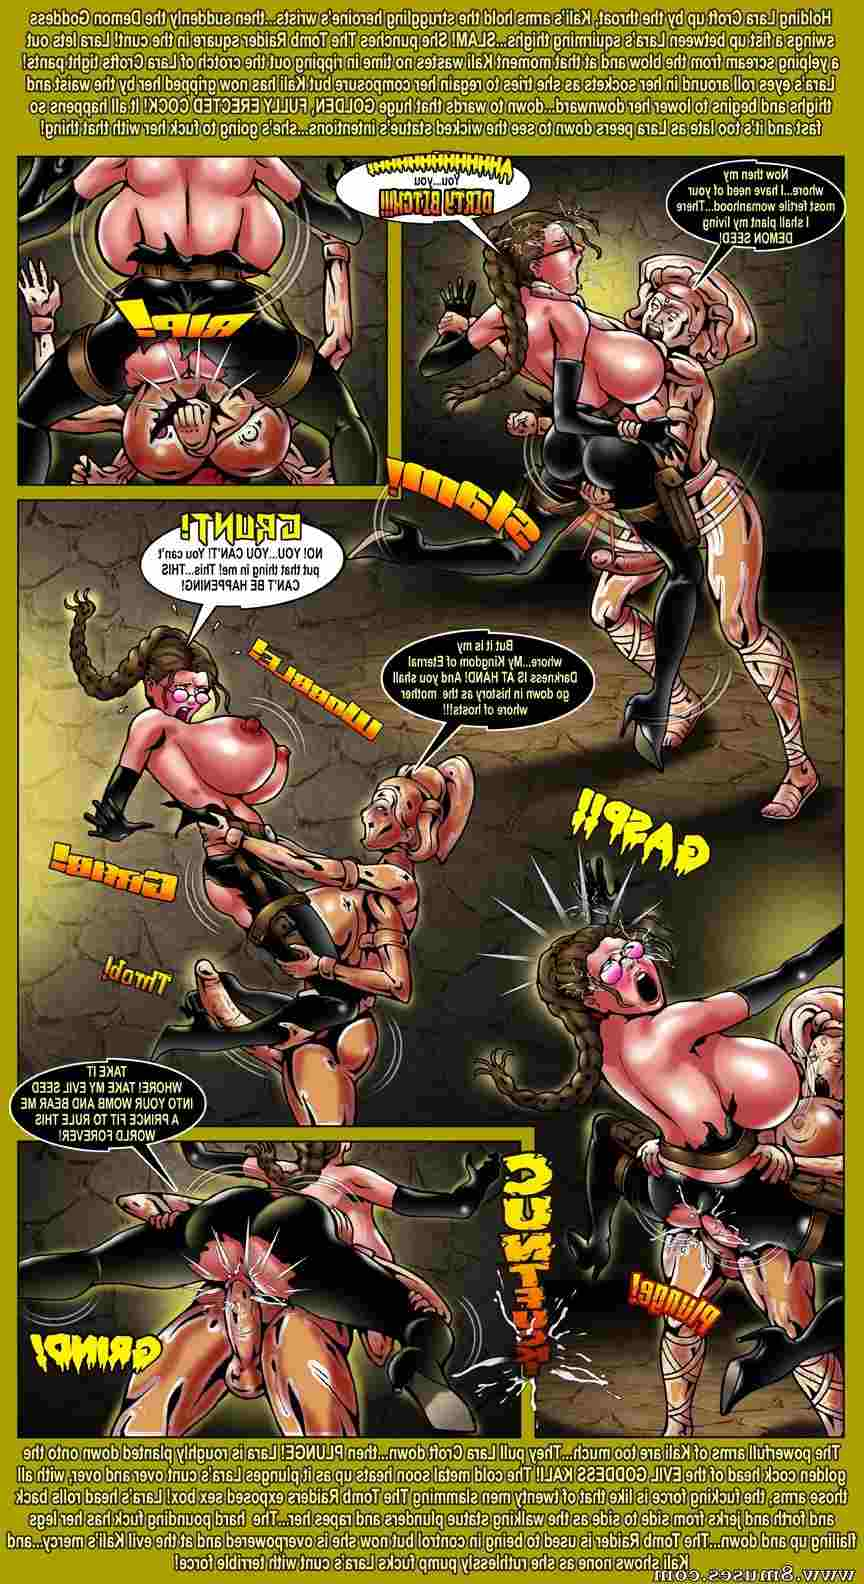 Smudge-Comics/Superheroes/Tomb-Raider-Lara-Croft Tomb_Raider_-_Lara_Croft__8muses_-_Sex_and_Porn_Comics_6.jpg